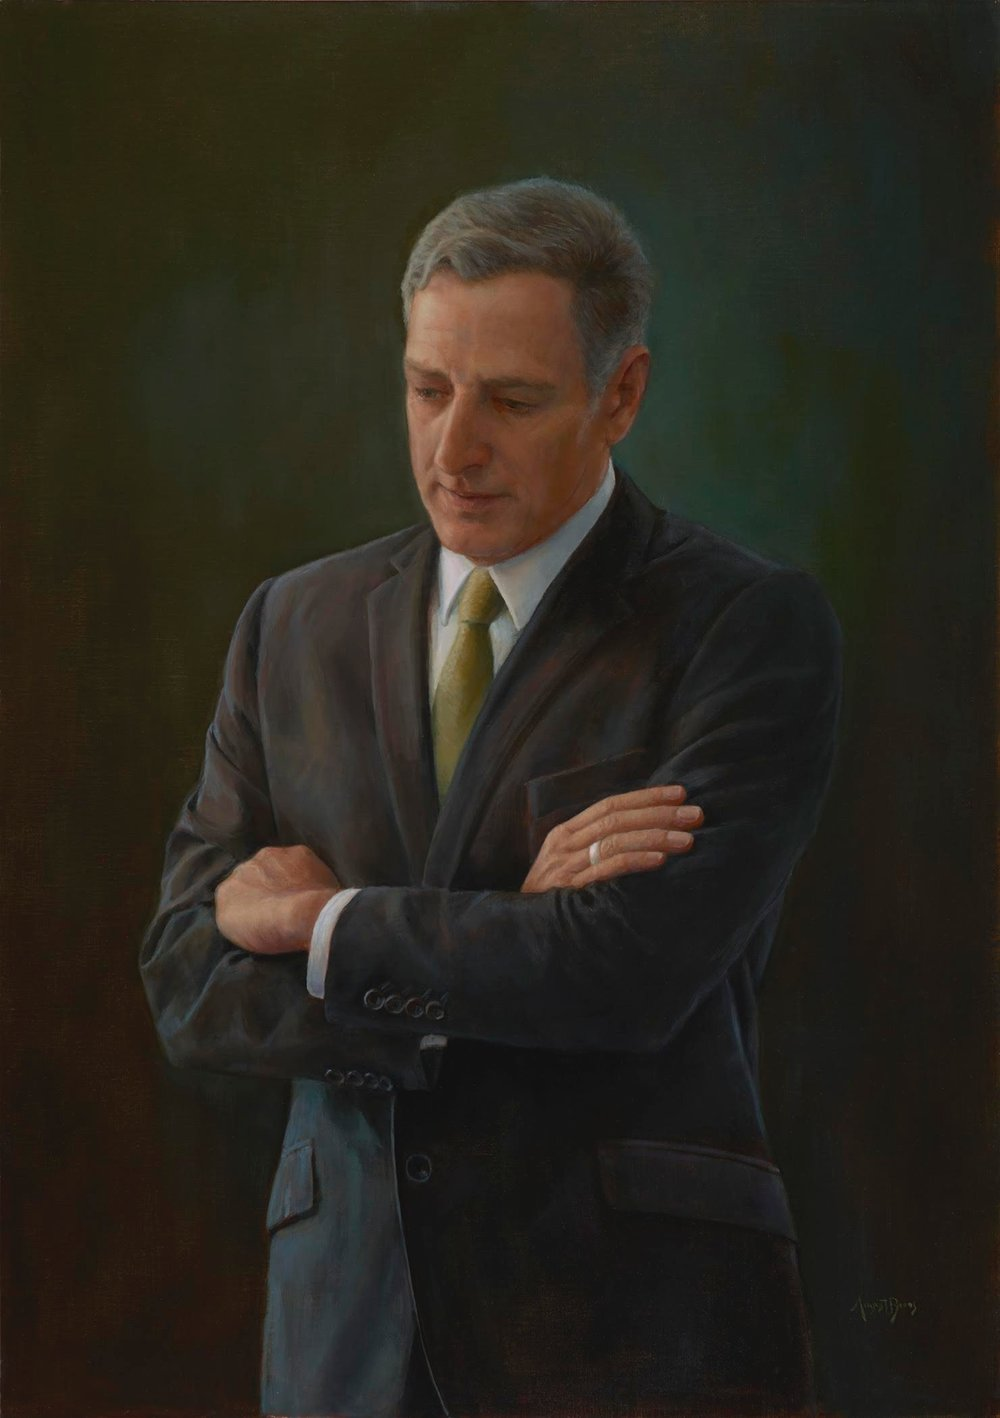 Governor Peter Shumlin, 81st Governor of Vermont, Commissioned Portrait